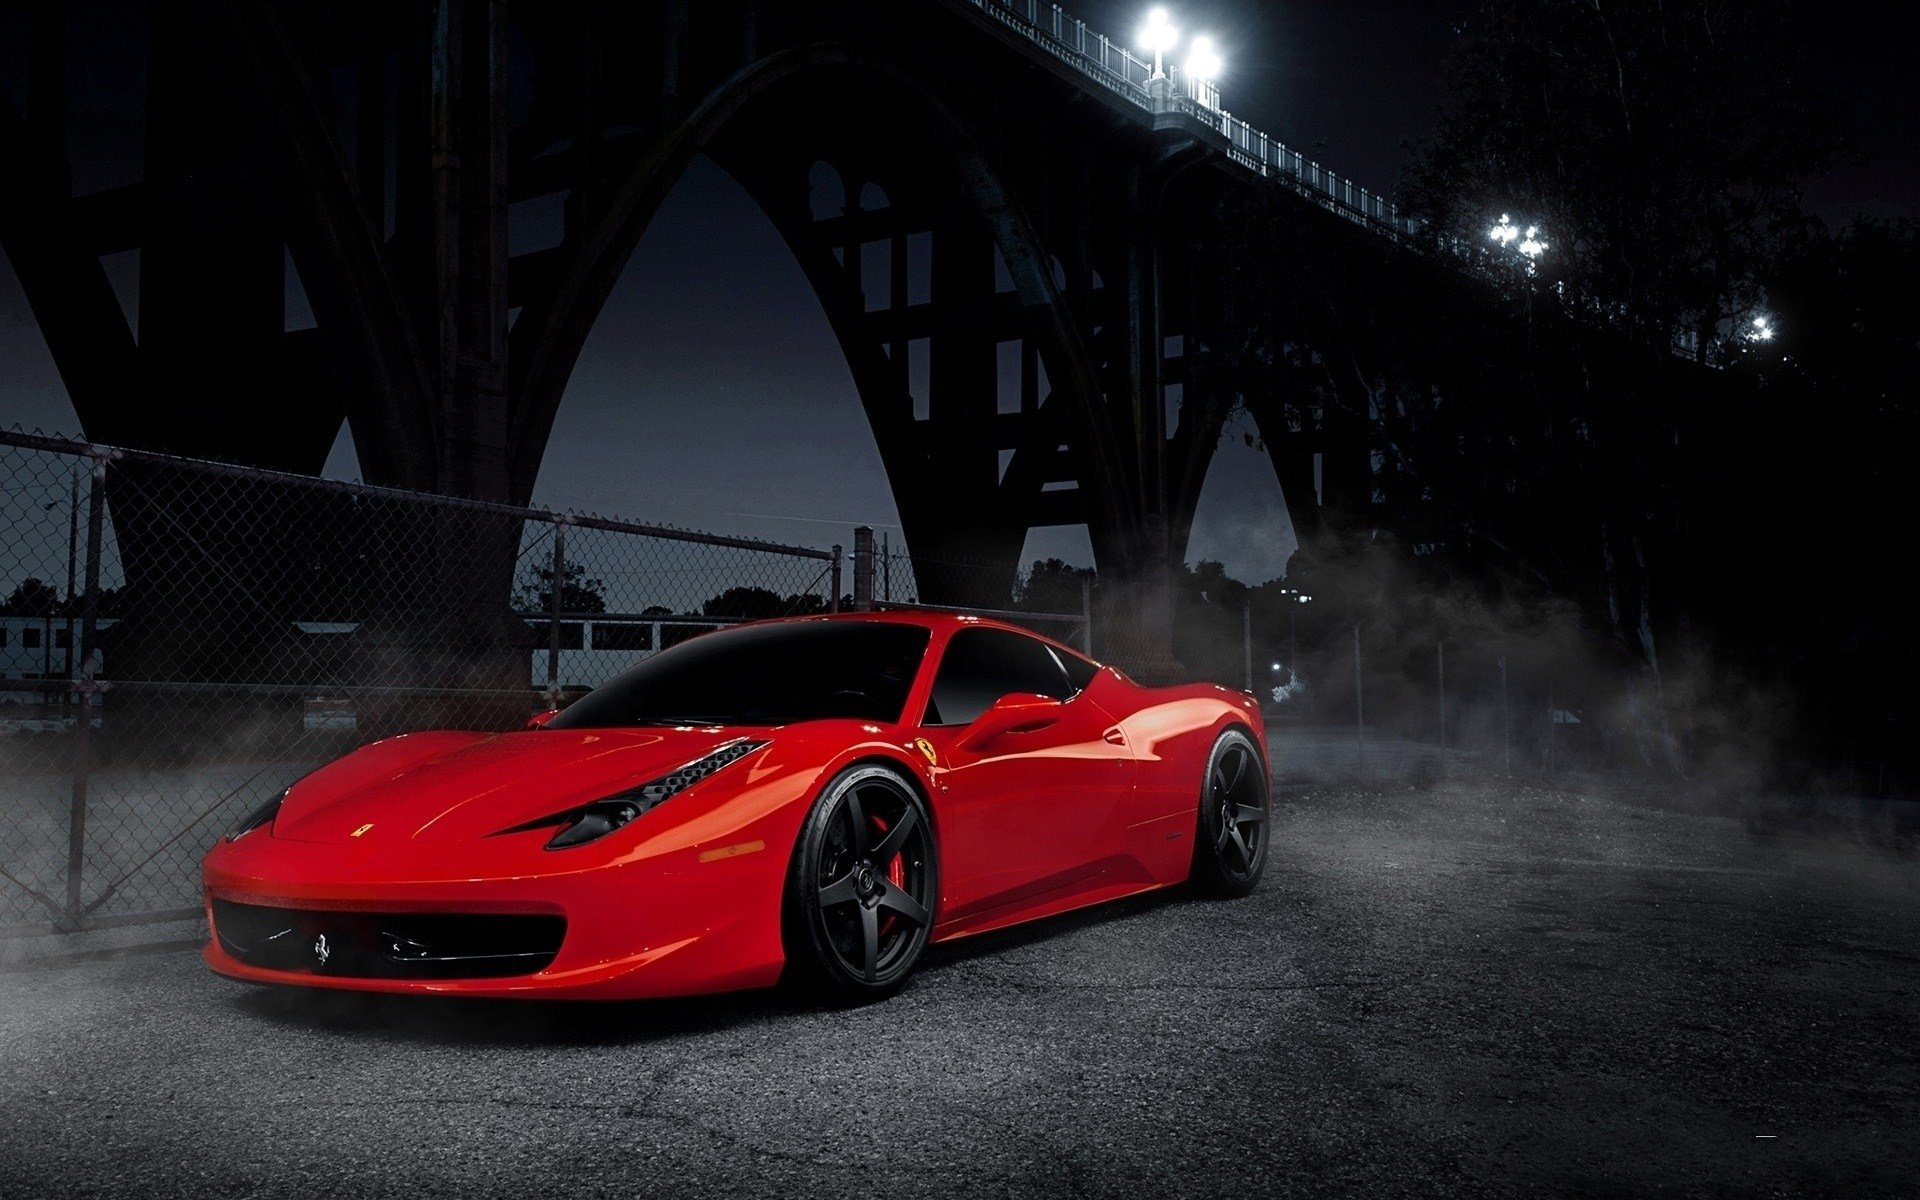 1920x1200 - Ferrari 458 Italia Wallpapers 1